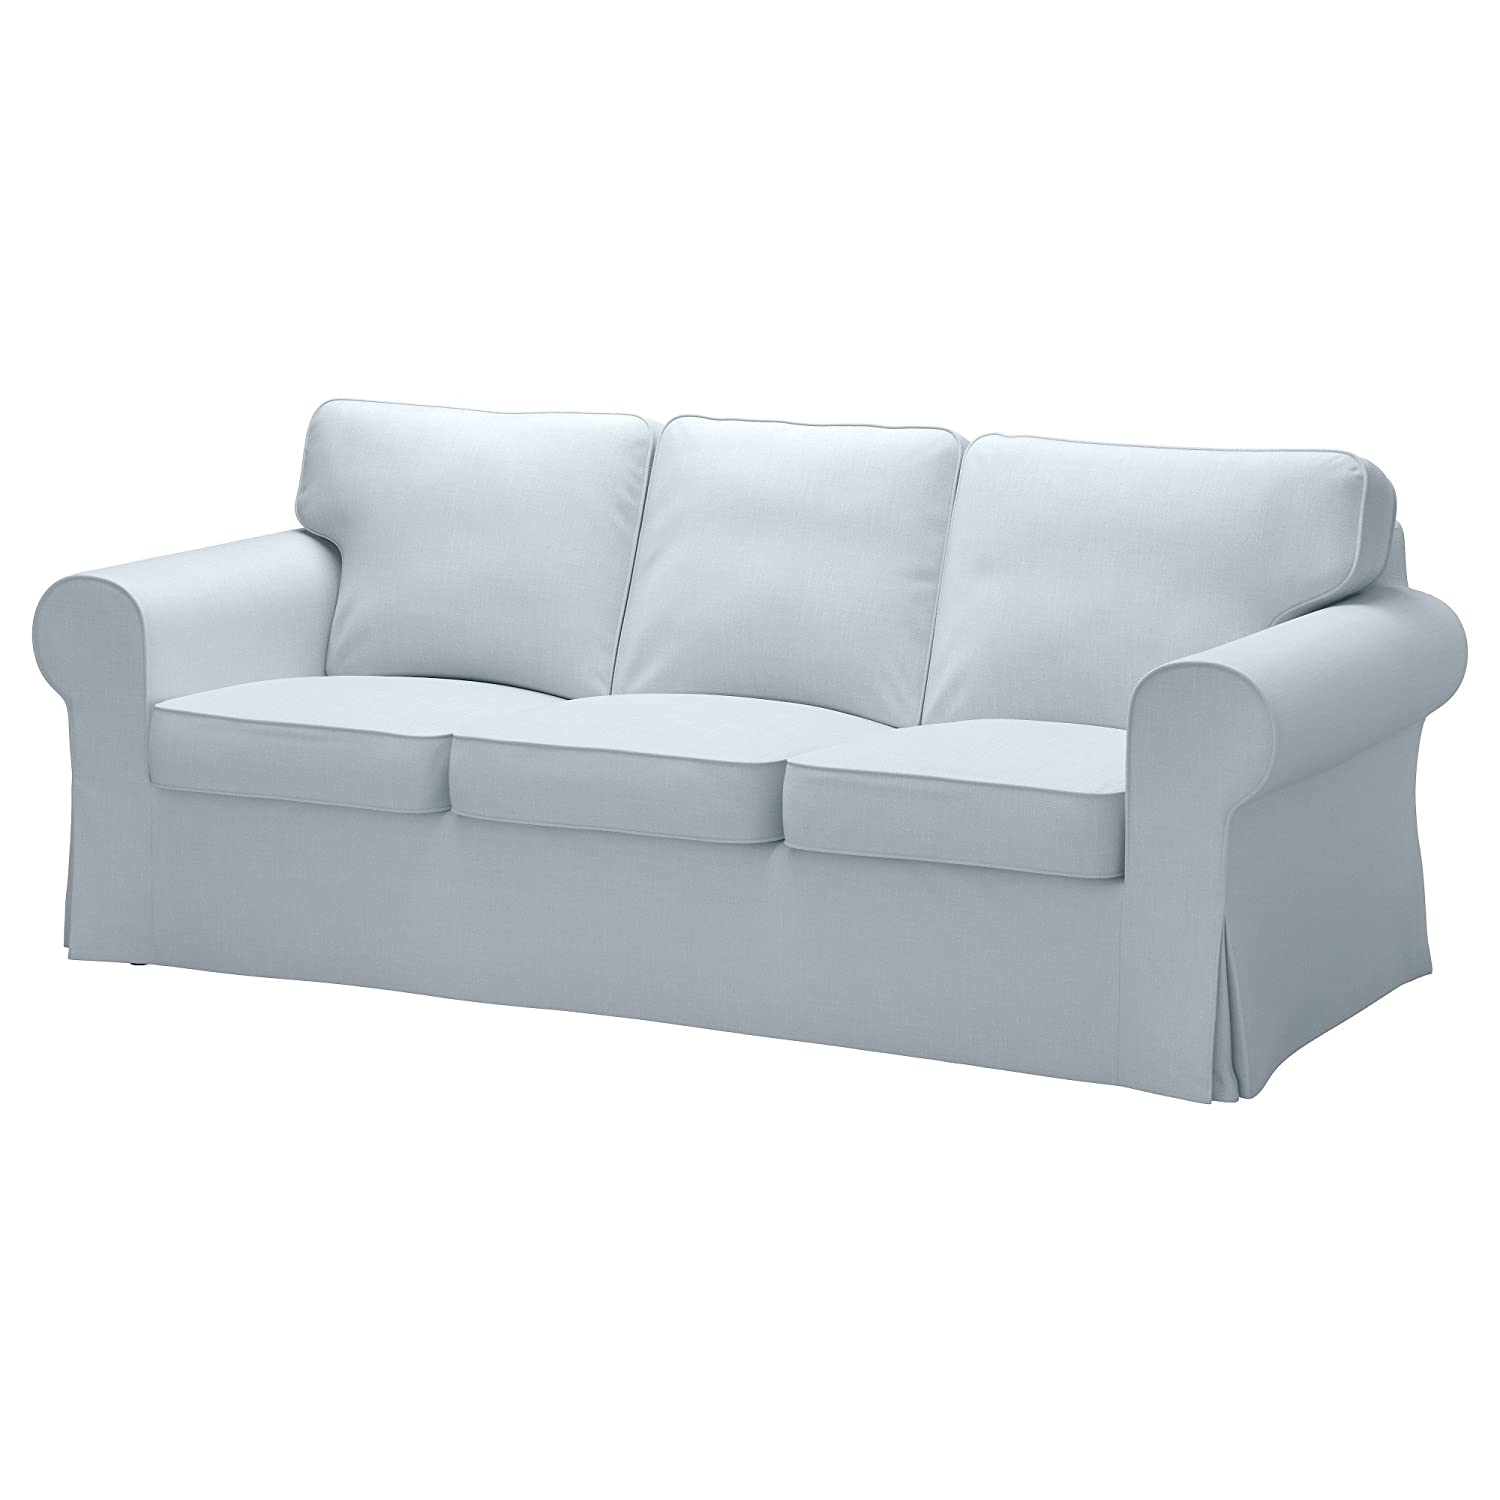 Nordvalla Light Blue slipcover for Ikea Ektorp sofa is a wonderful way to update your Ikea sofa! #ikeahack #ektorp #slipcoversofa